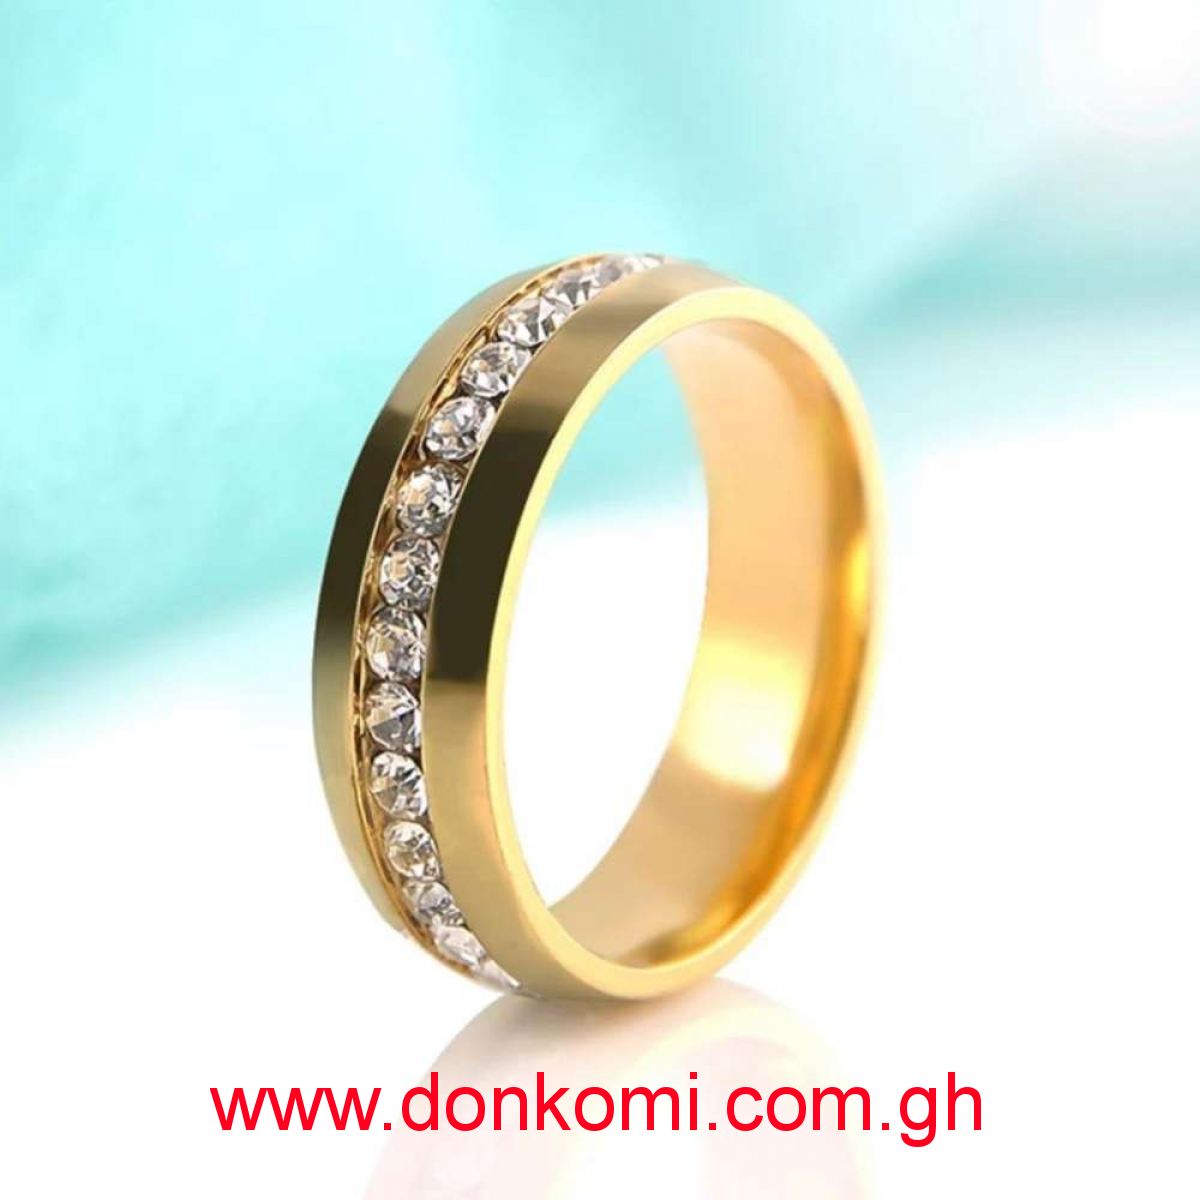 Ladies 14K Gold Plated Rings with Swarovski Crystals